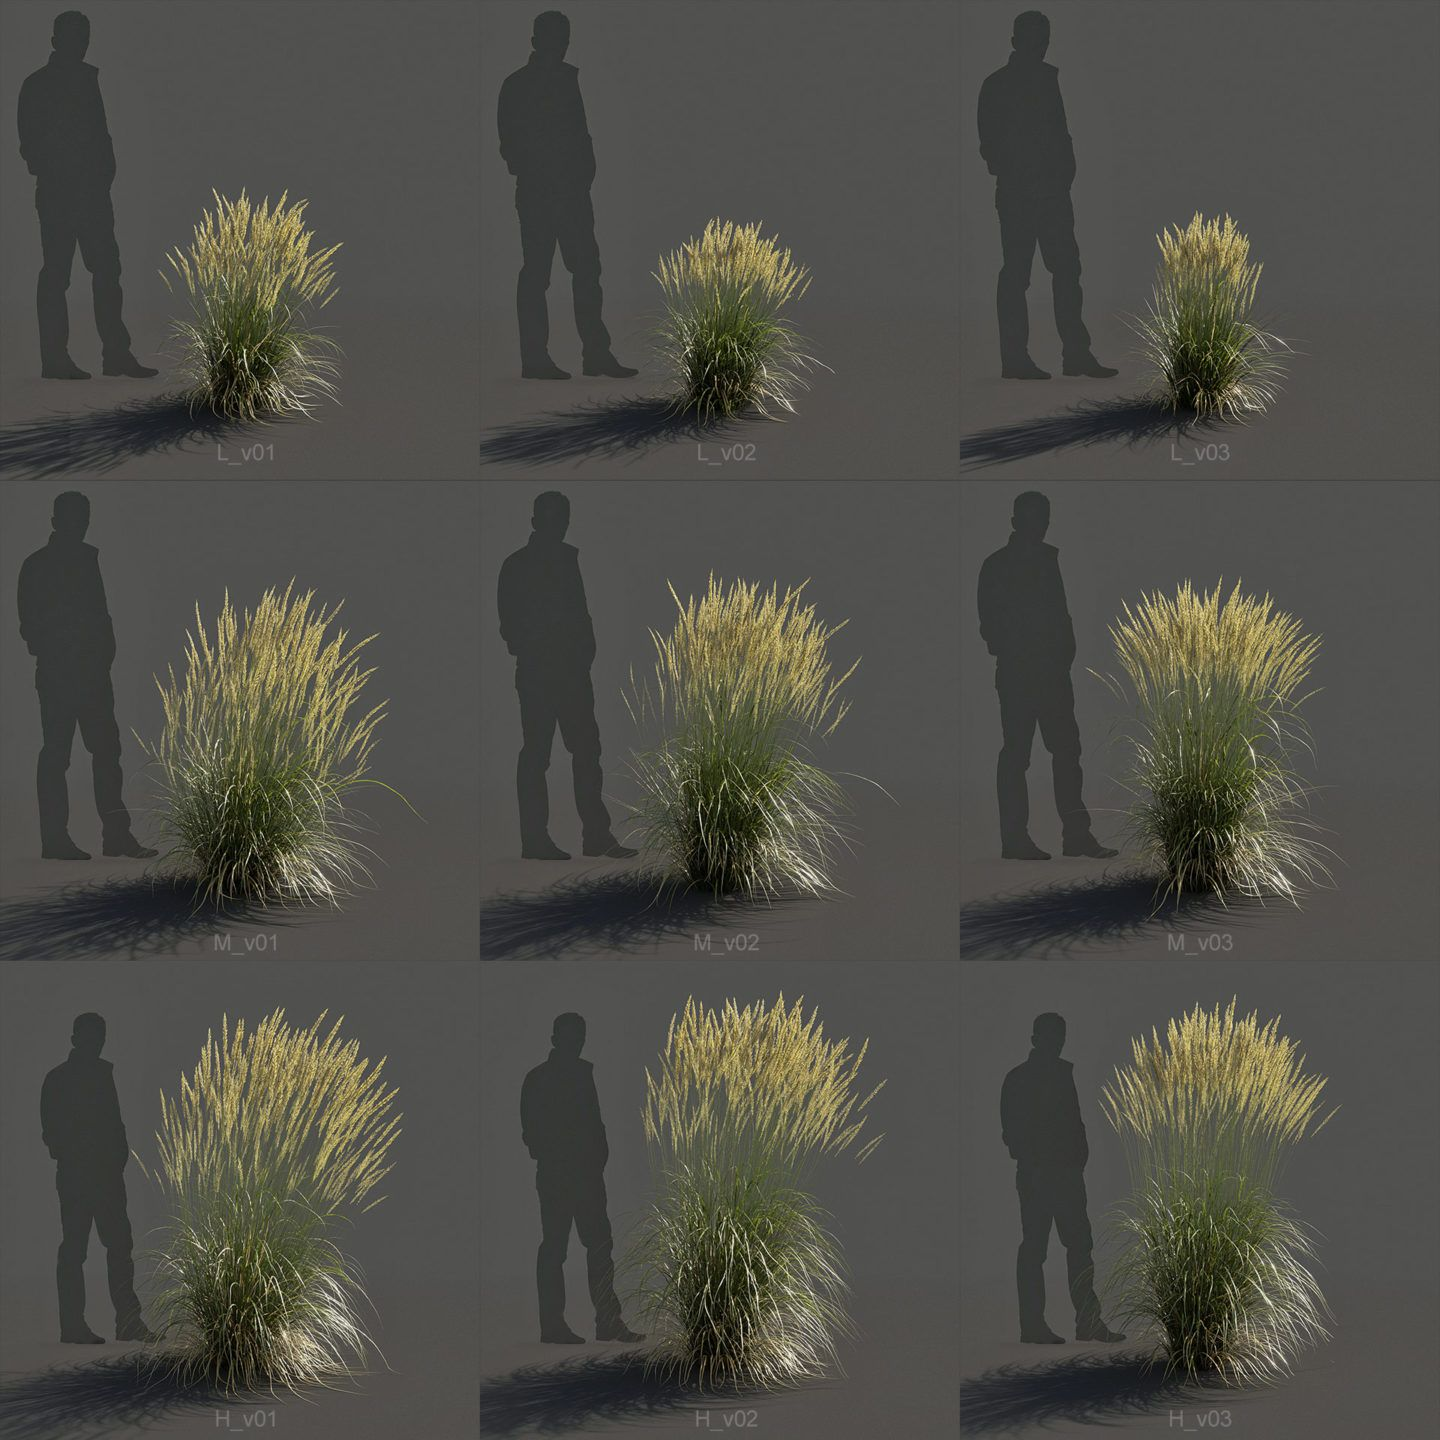 Feather Reed Grass Karl Foerster Calamagrostis Acutiflora 3d